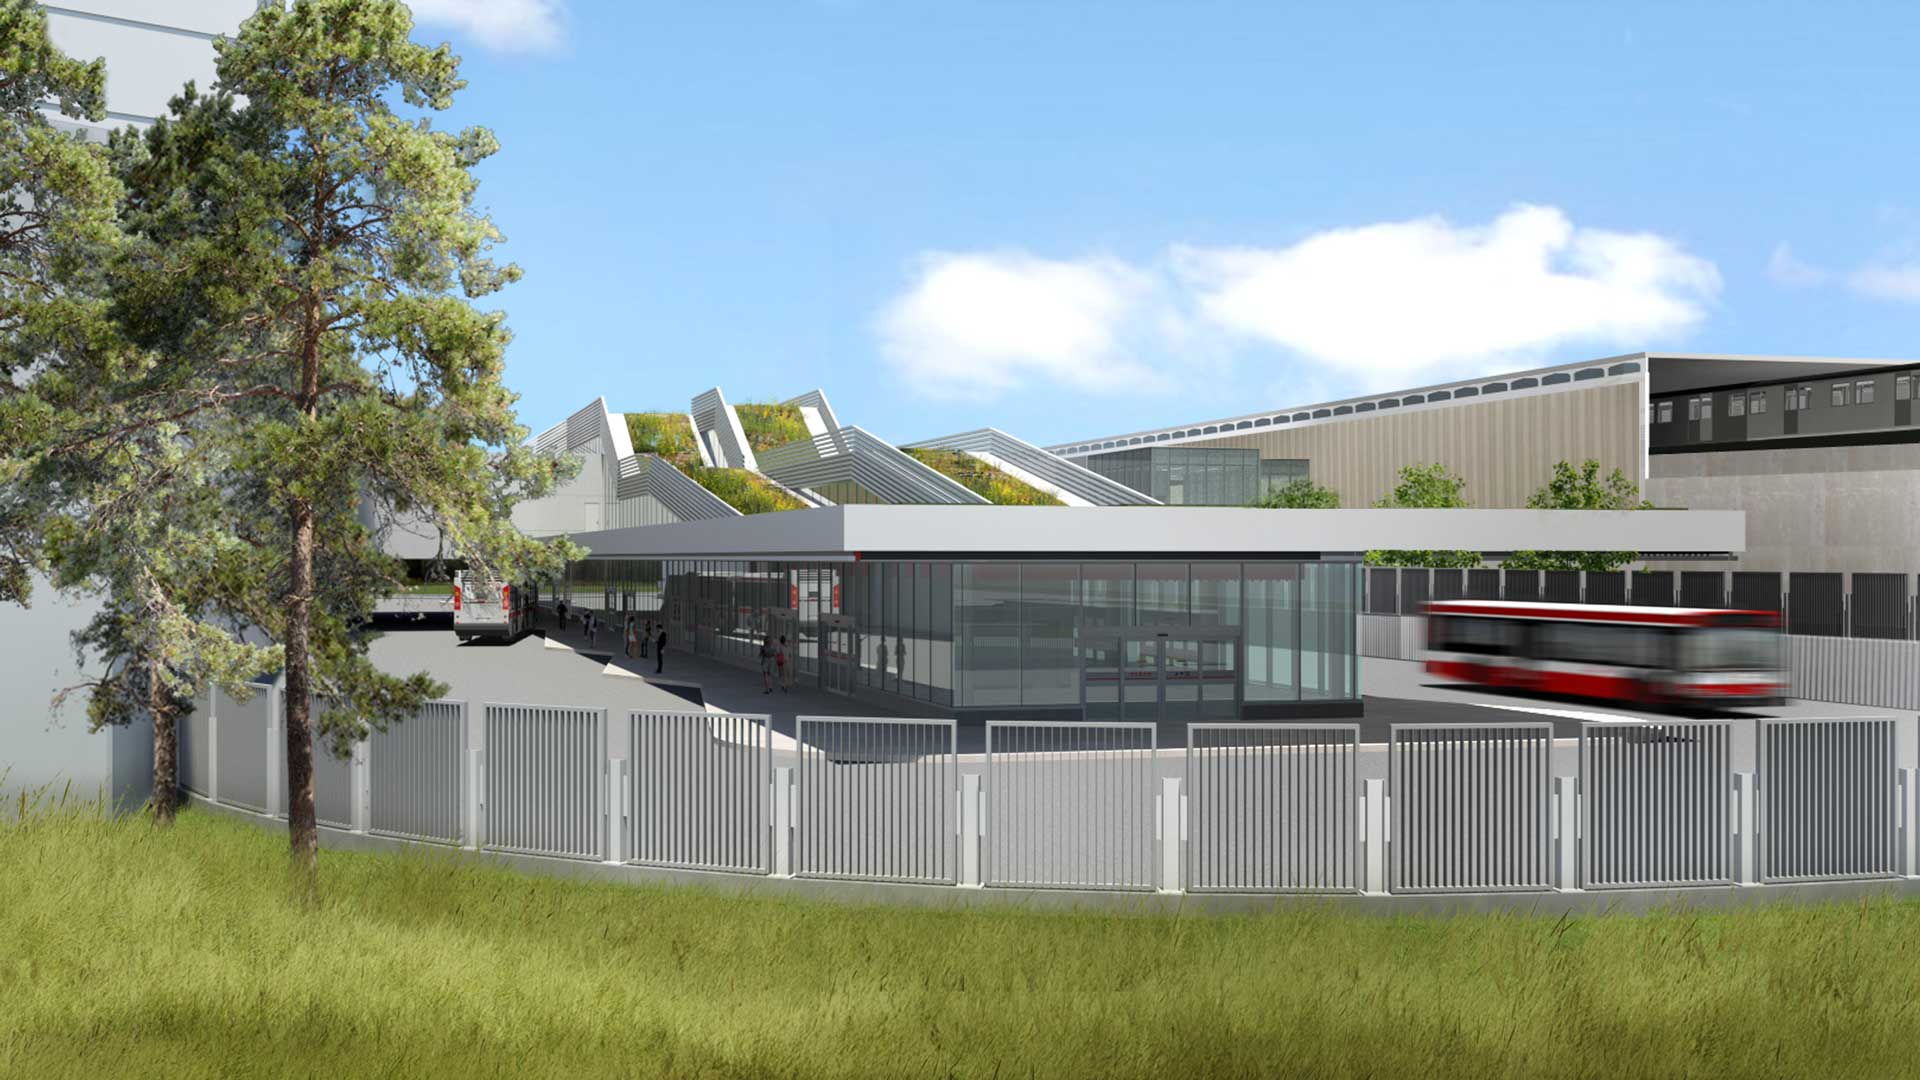 Exterior rendering of TTC Warden Station, showing busses within the station